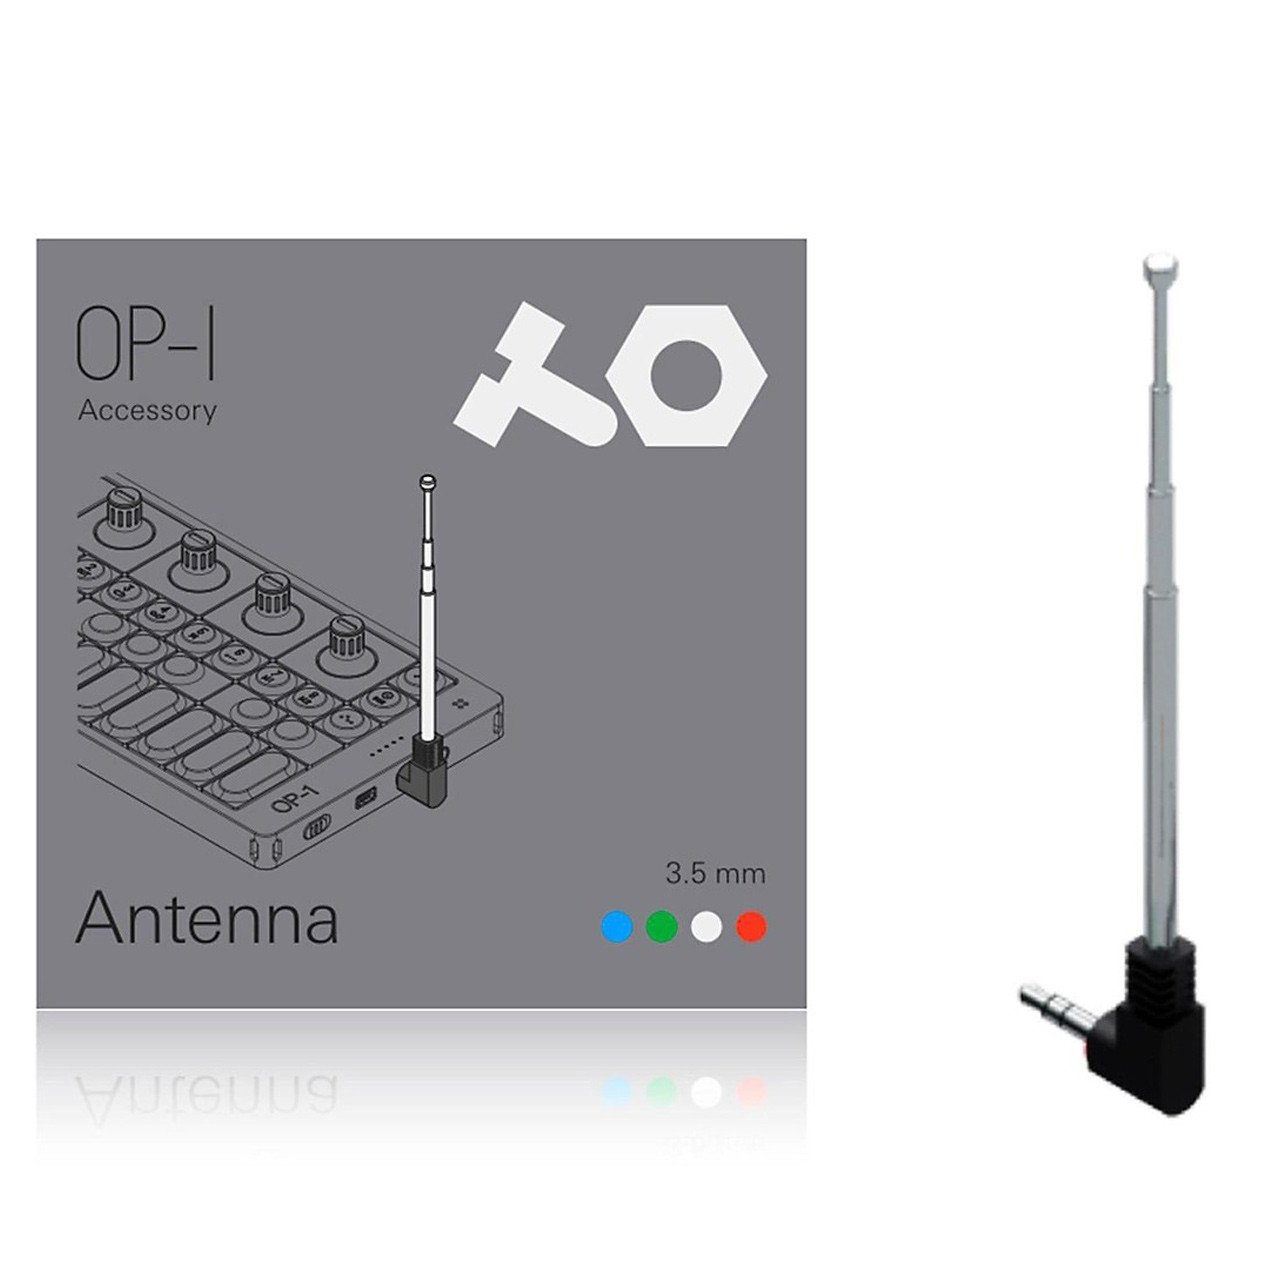 Keyboard Accessories - Teenage Engineering FM Antenna For OP-1